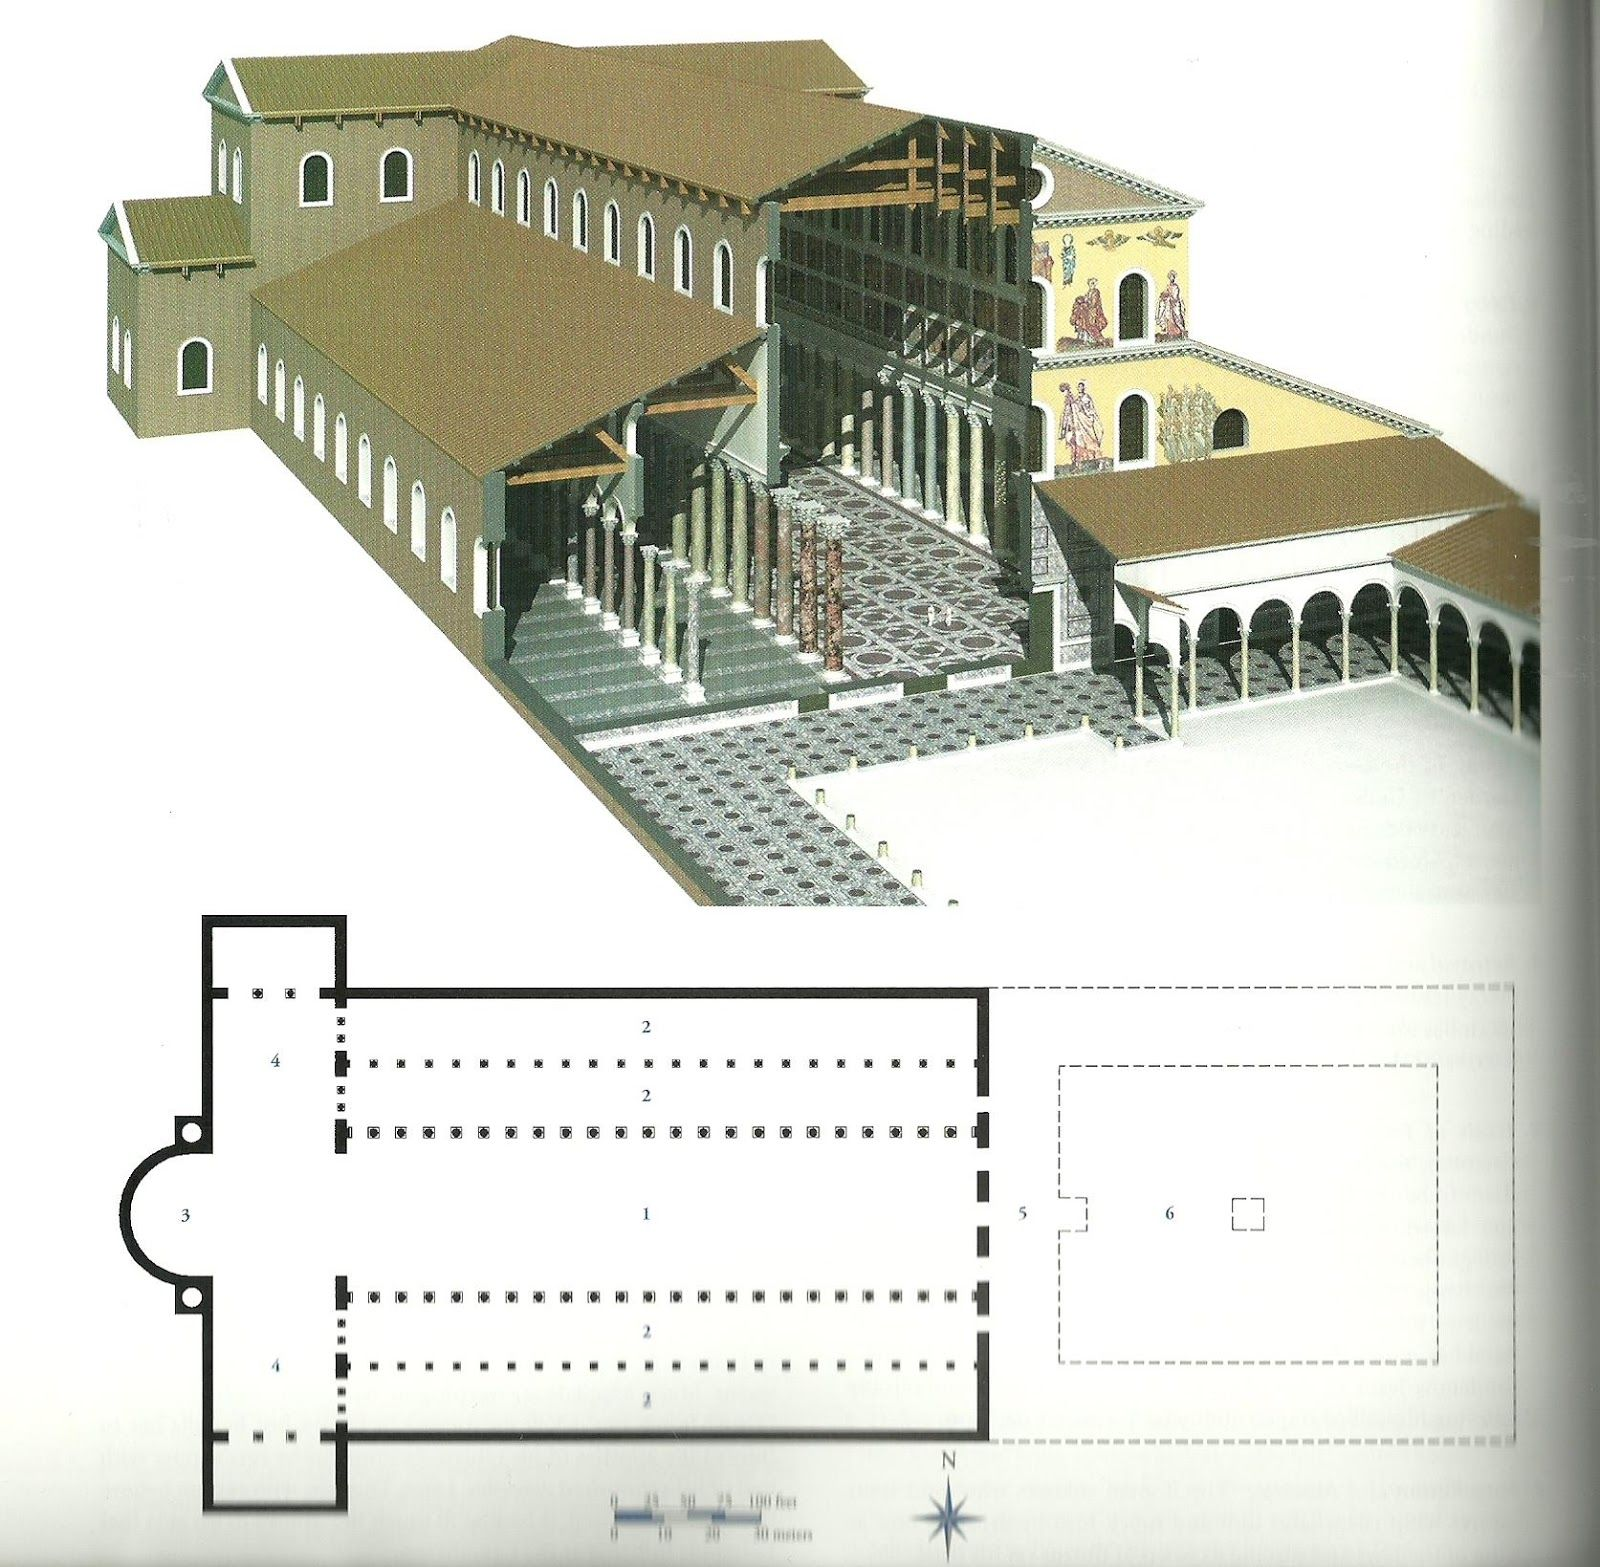 hight resolution of plan and reconstruction drawing old st peter s basilica begun by emperor constantine i 4th century ad